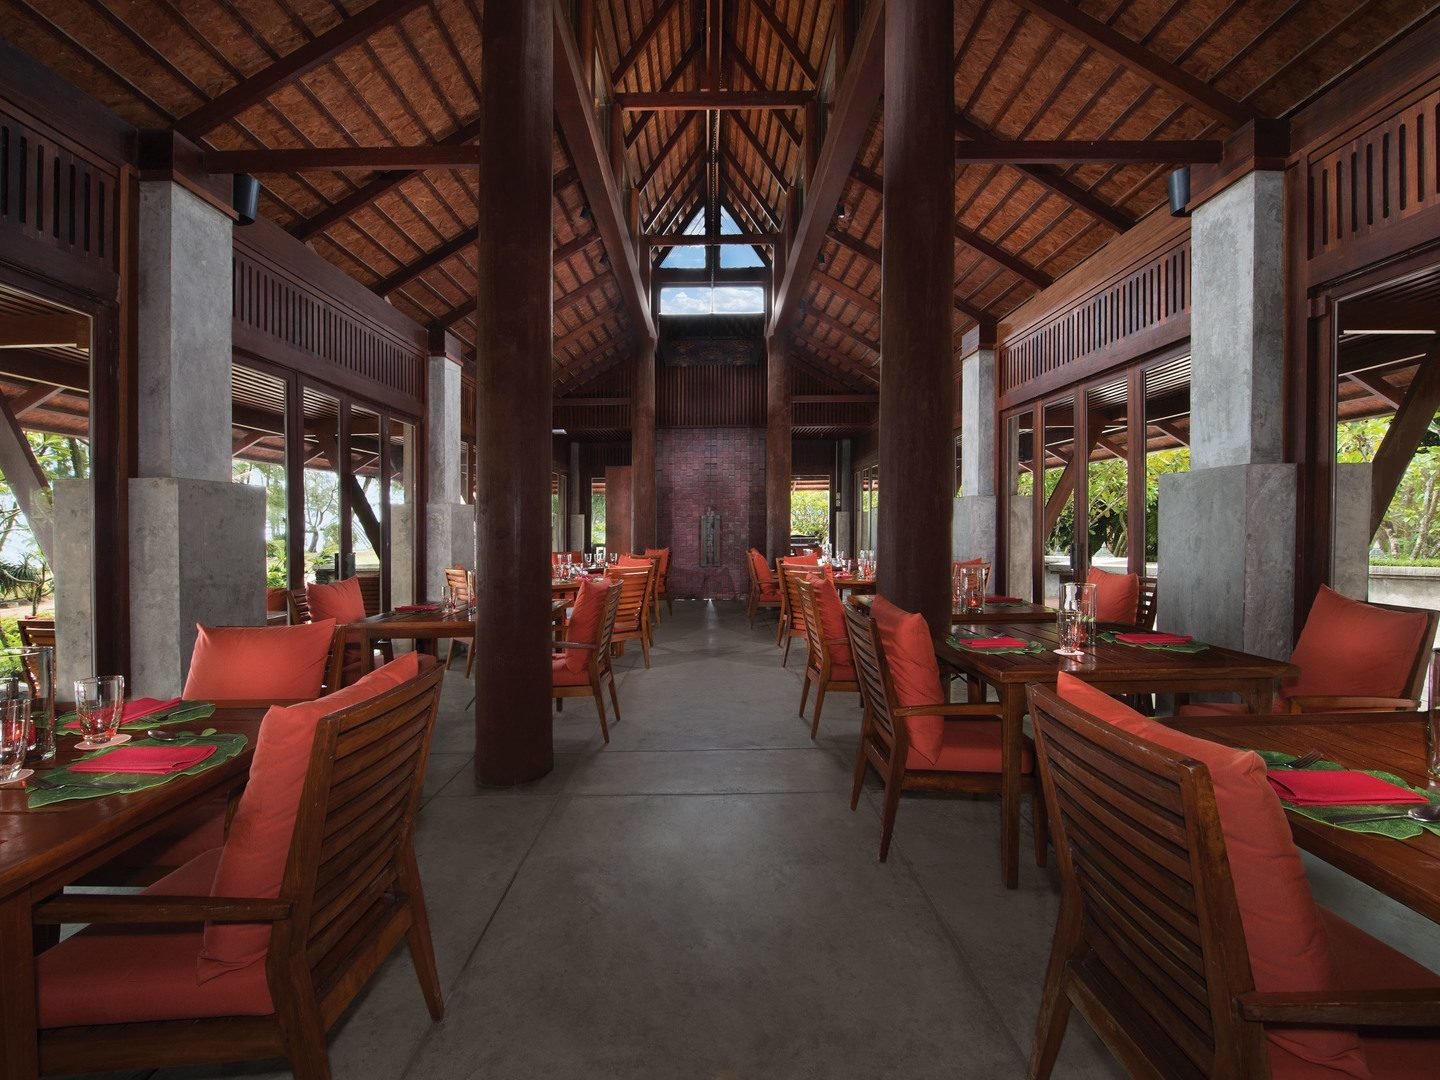 Jw Marriott Phuket Cucina Restaurant Marriott Phuket Beach Club 30 Discount With Rentals Resales